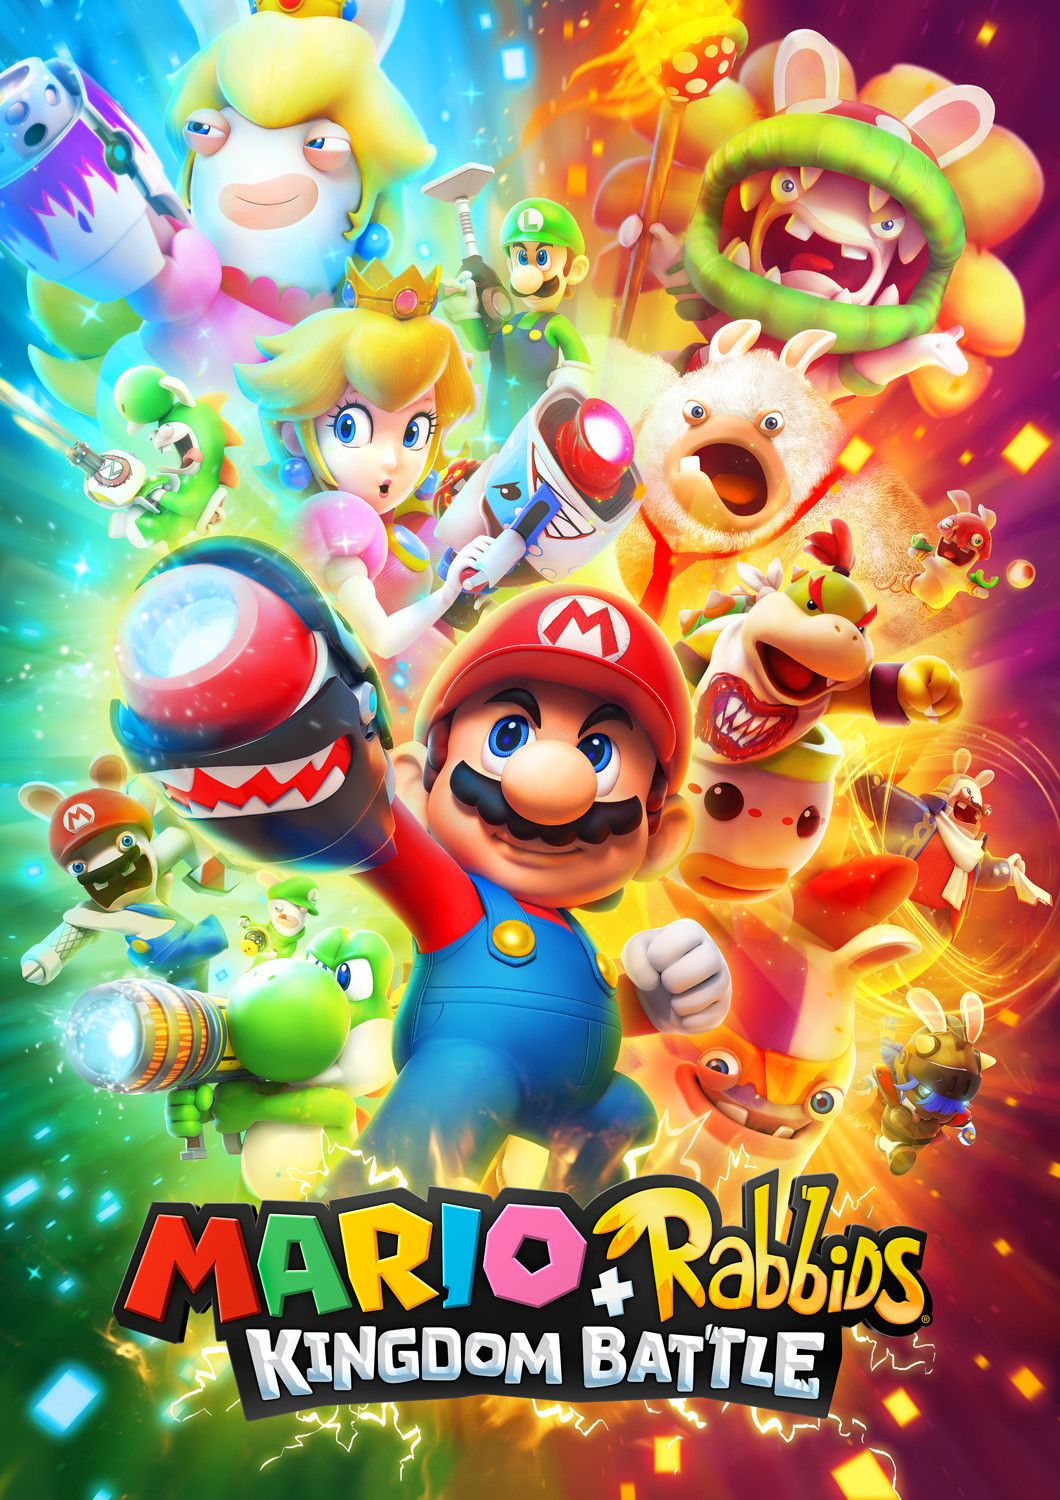 Here Are The Artwork I Ve Made In Collaboration With Thomas Veyrat For Mario Rabbids Kingdom Battle A Ubisoft And Ninte Super Mario Art Mario Mario And Luigi